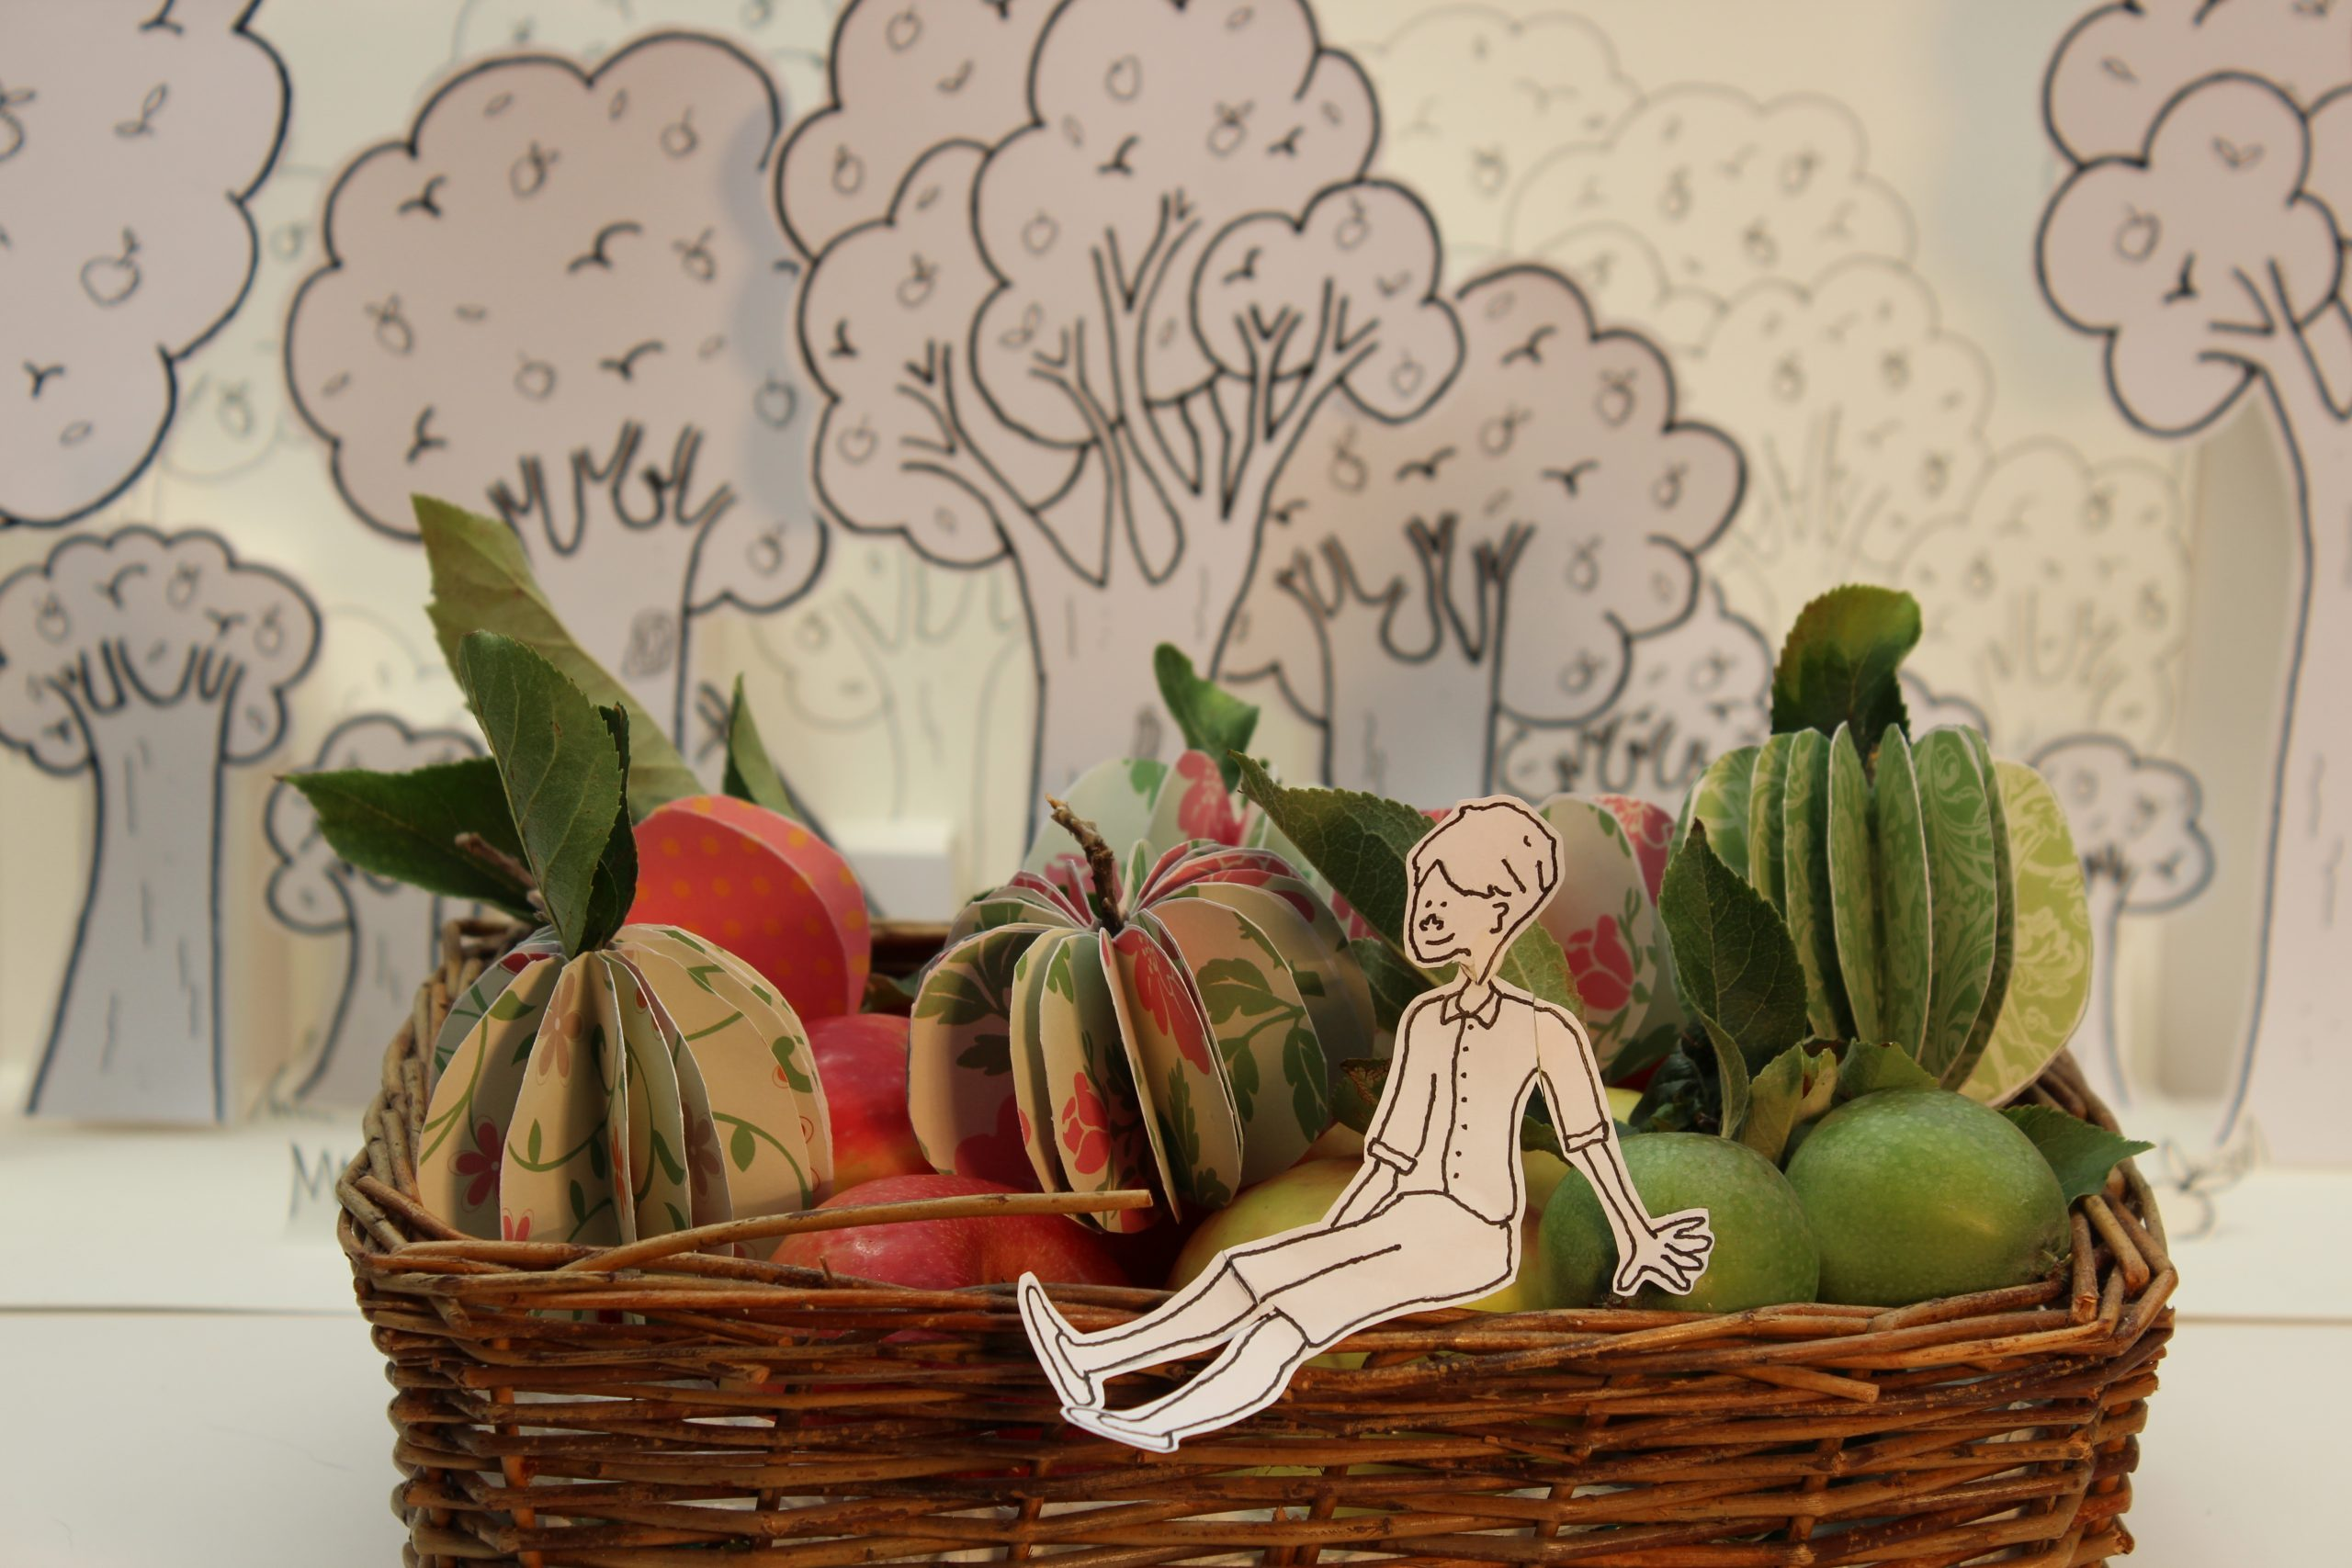 Photograph of a frame from stop-frame animation. A boy drawn in pen sits on the edge of a real basket filled with both real and paper apples. In the background stands a copse of pop-up pen drawn apple trees.